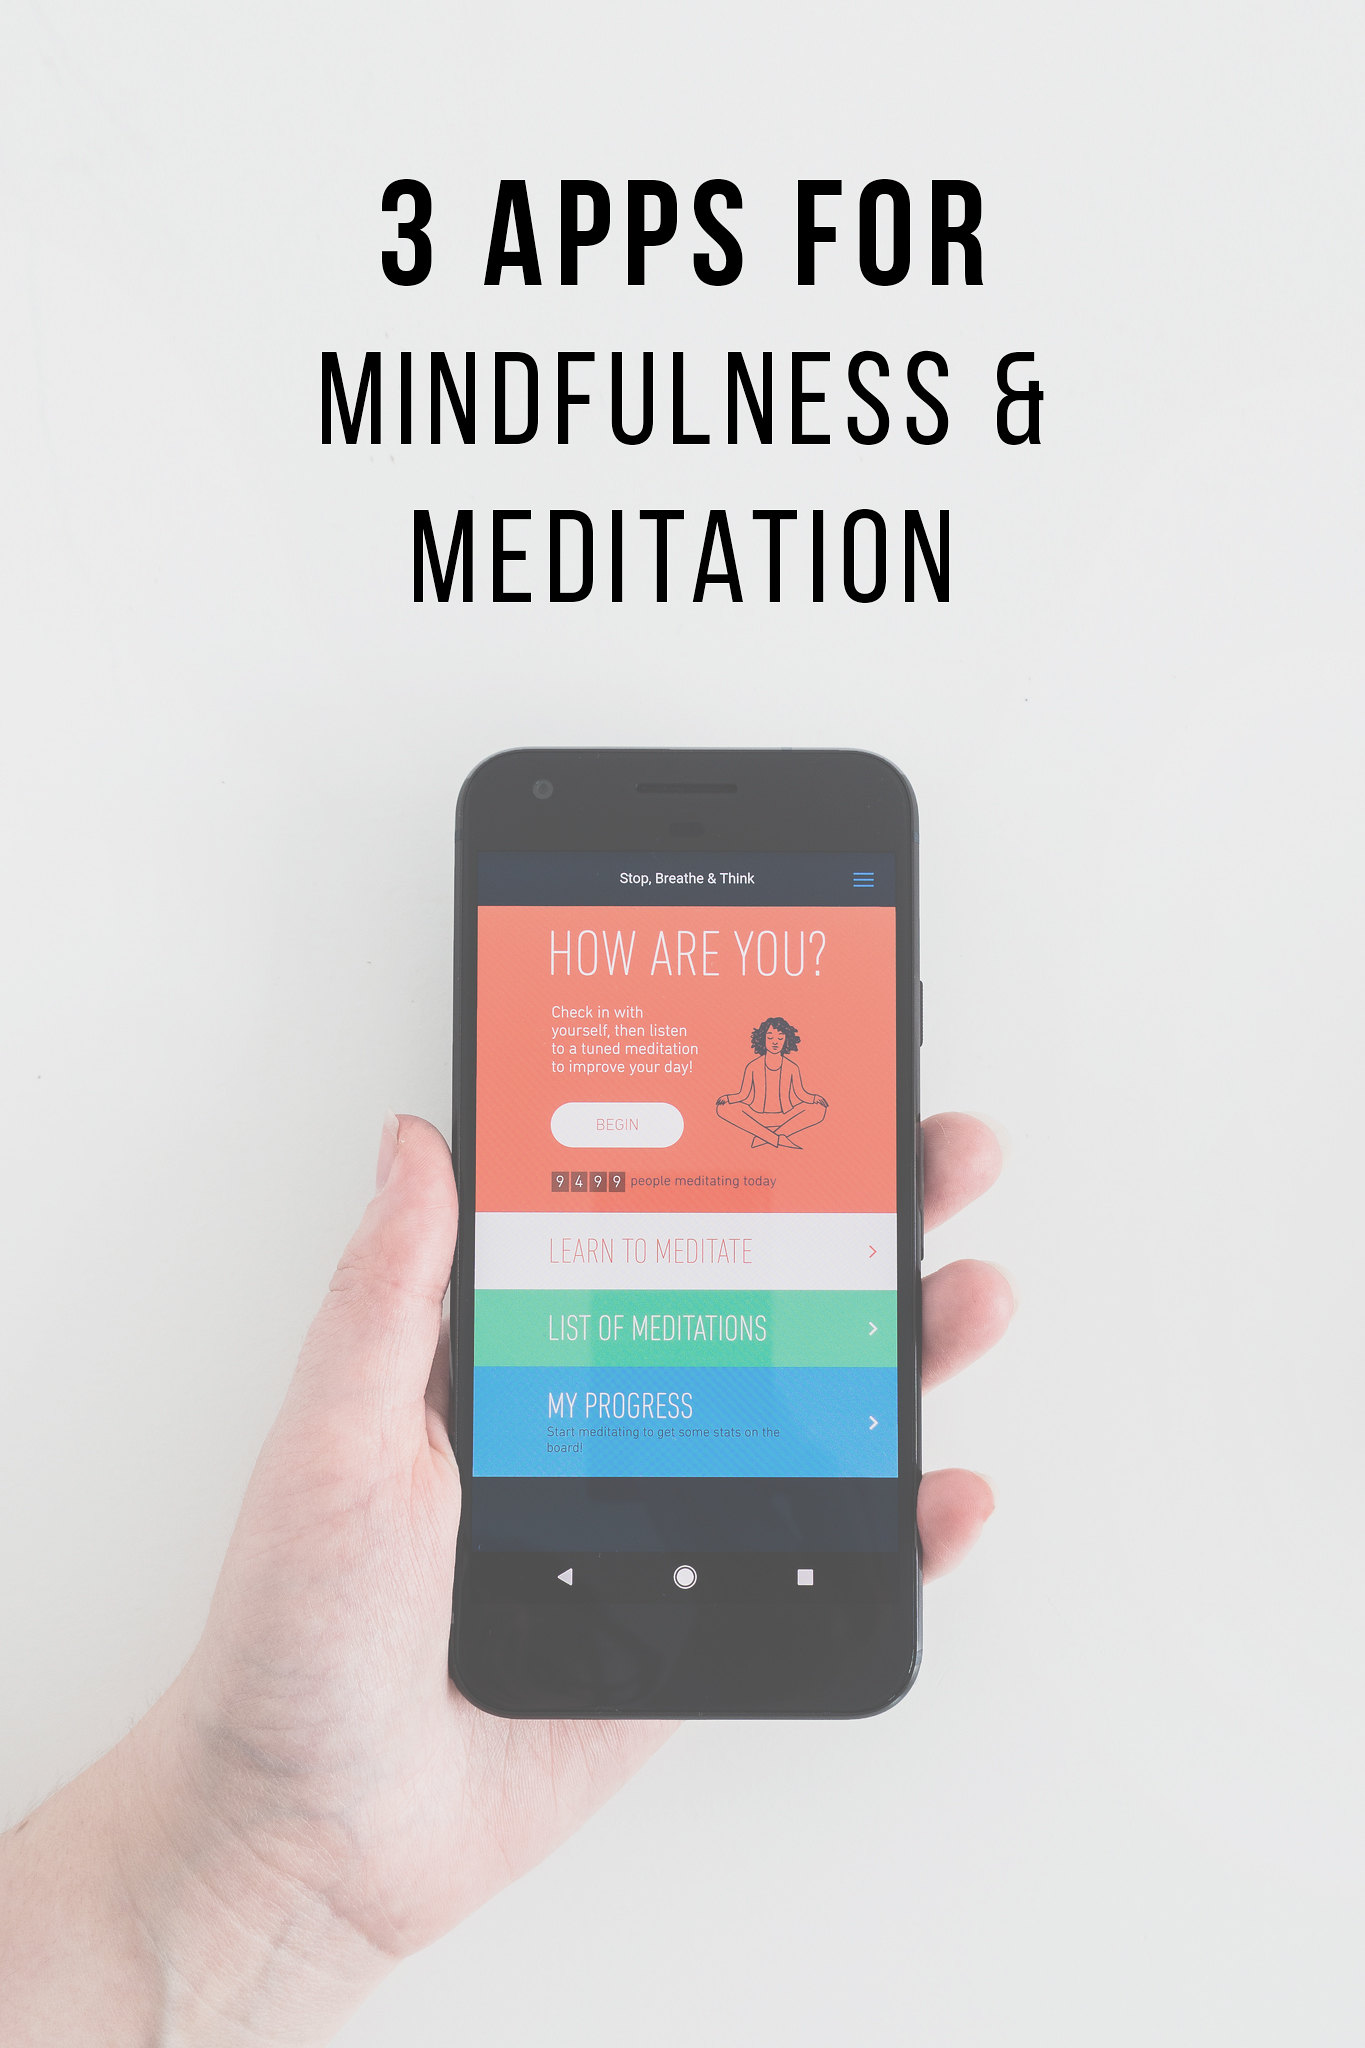 Mindfulness Apps For Meditation and Relaxation